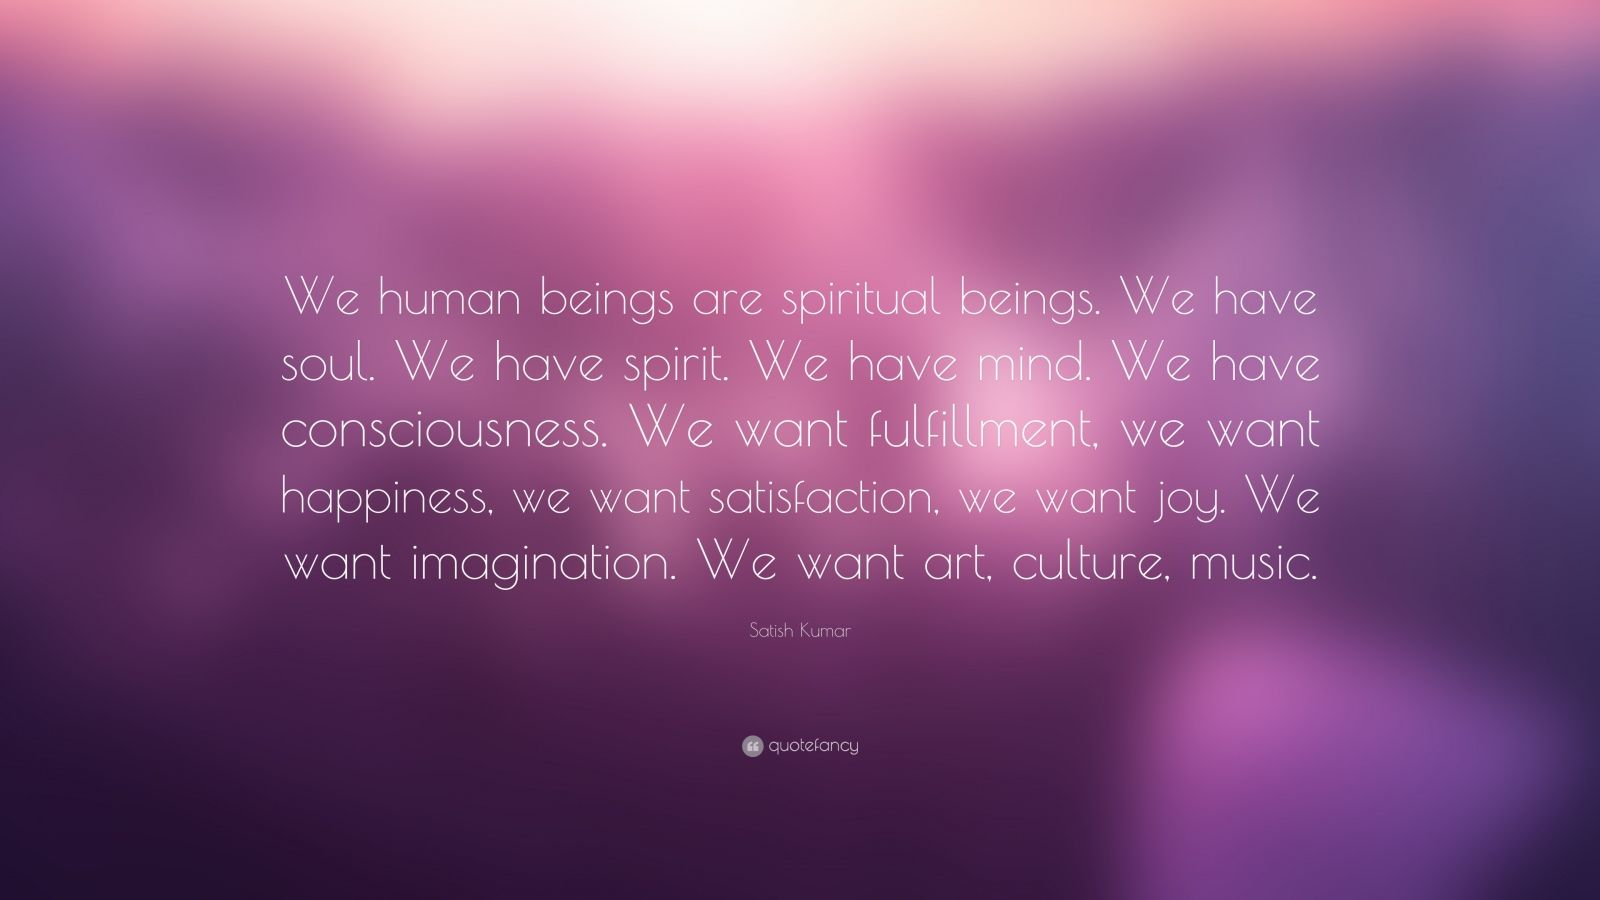 """Satish Kumar Quote: """"We human beings are spiritual beings. We have soul. We have spirit. We have mind. We have consciousness. We want fulfillment, we want happiness, we want satisfaction, we want joy. We want imagination. We want art, culture, music."""""""